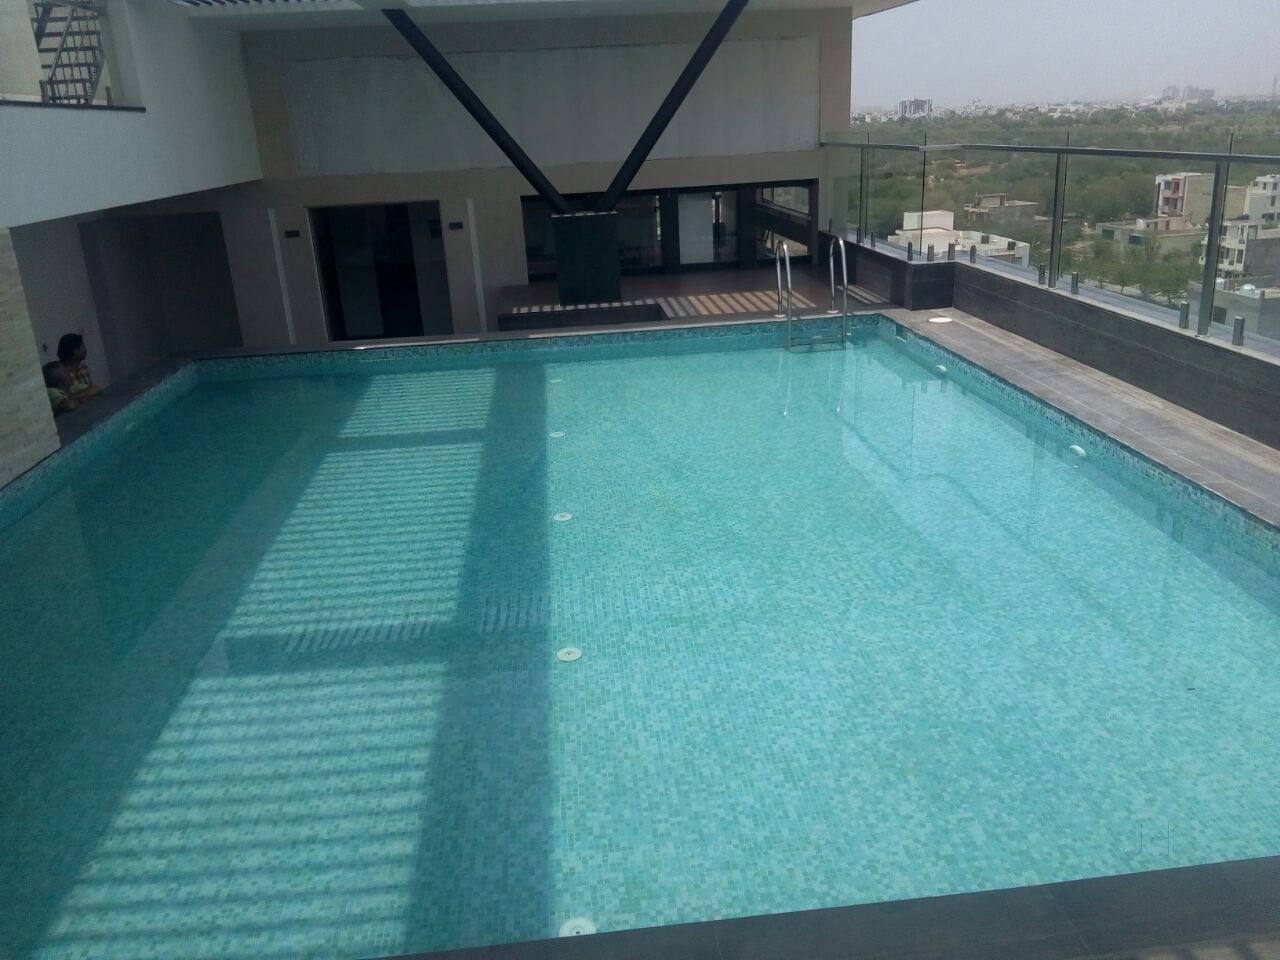 Top 20 Swimming Pool Cleaning Services in Jaipur - Justdial